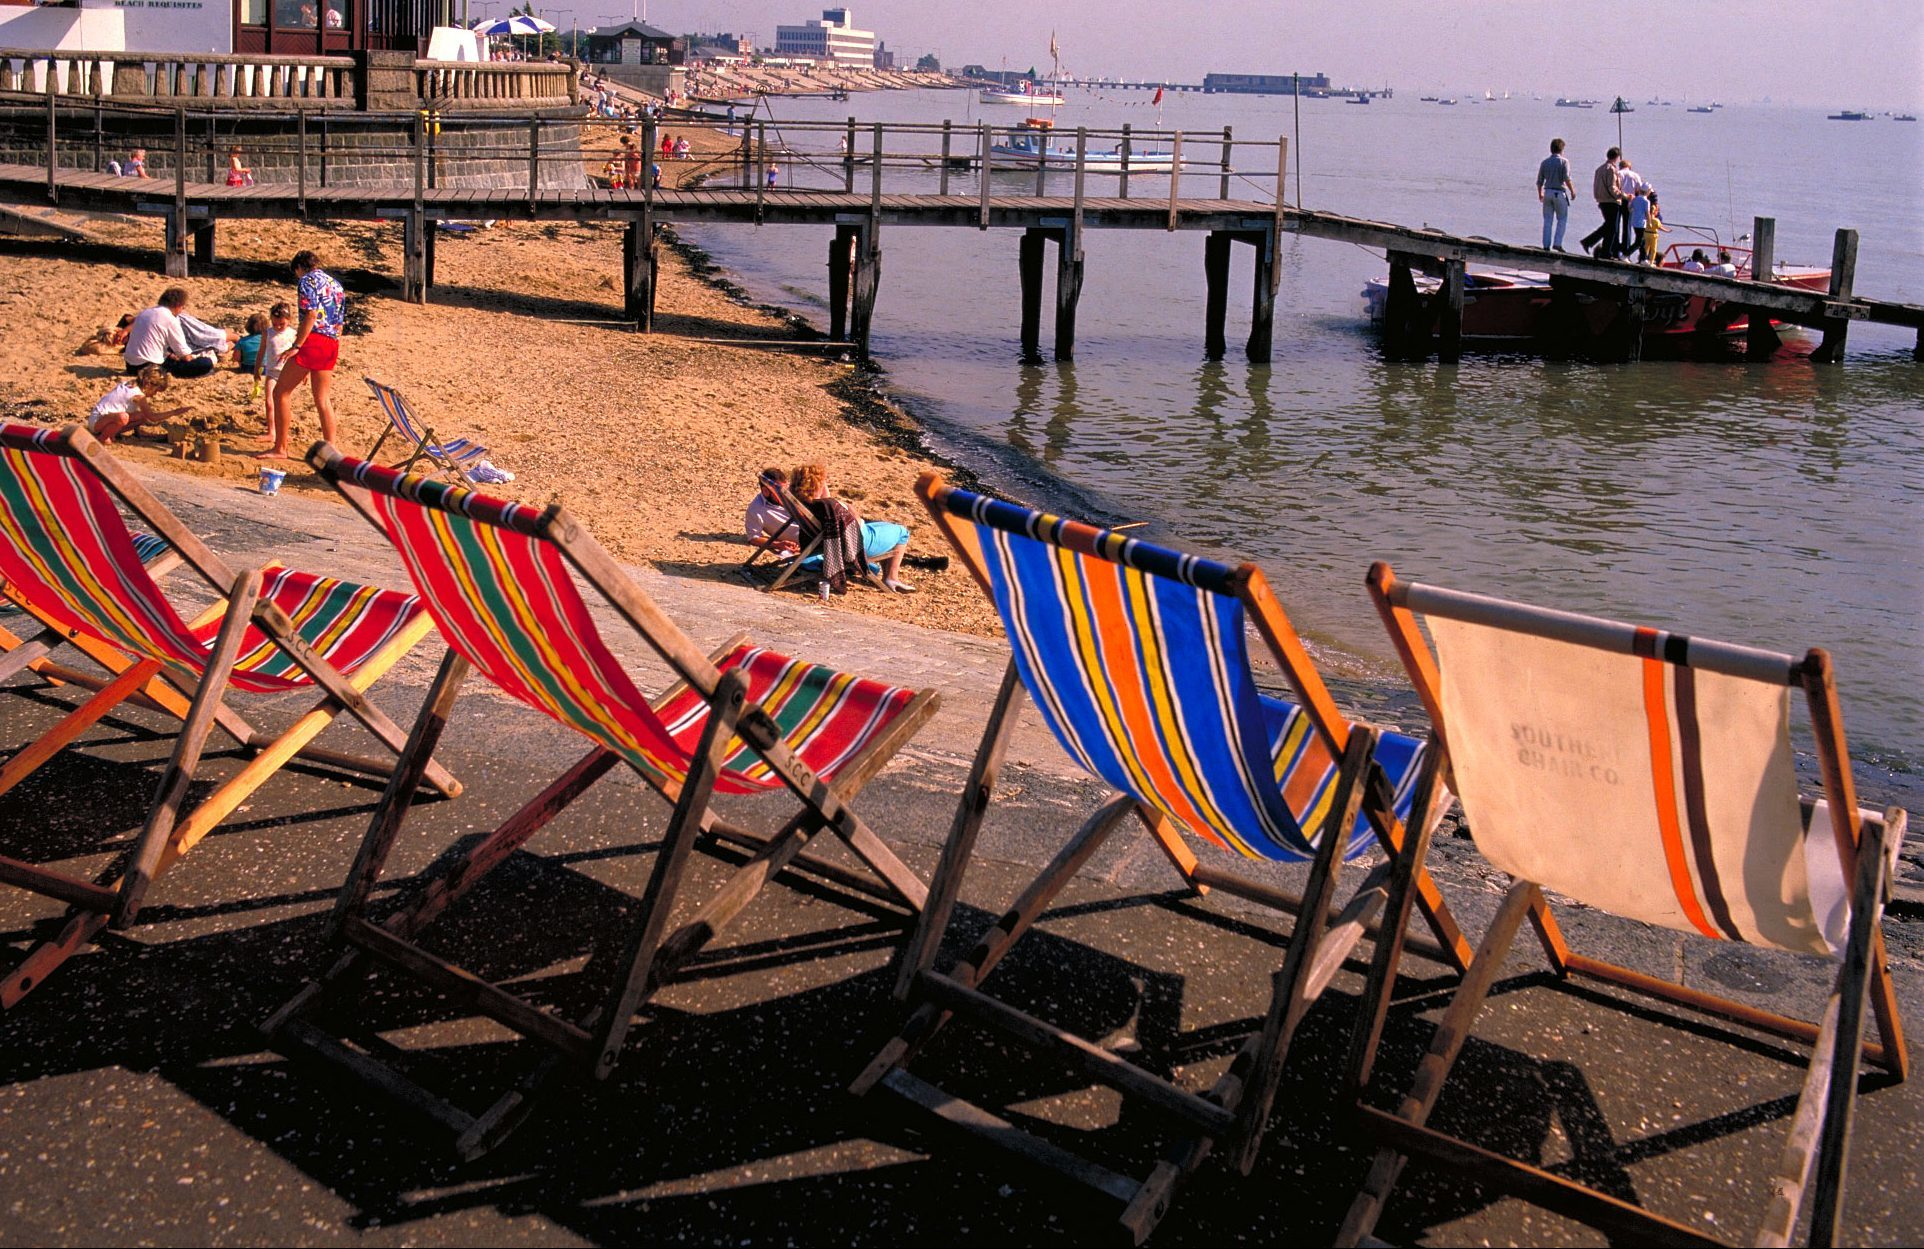 Deckchairs on the Southend seafront (britainonview.com)